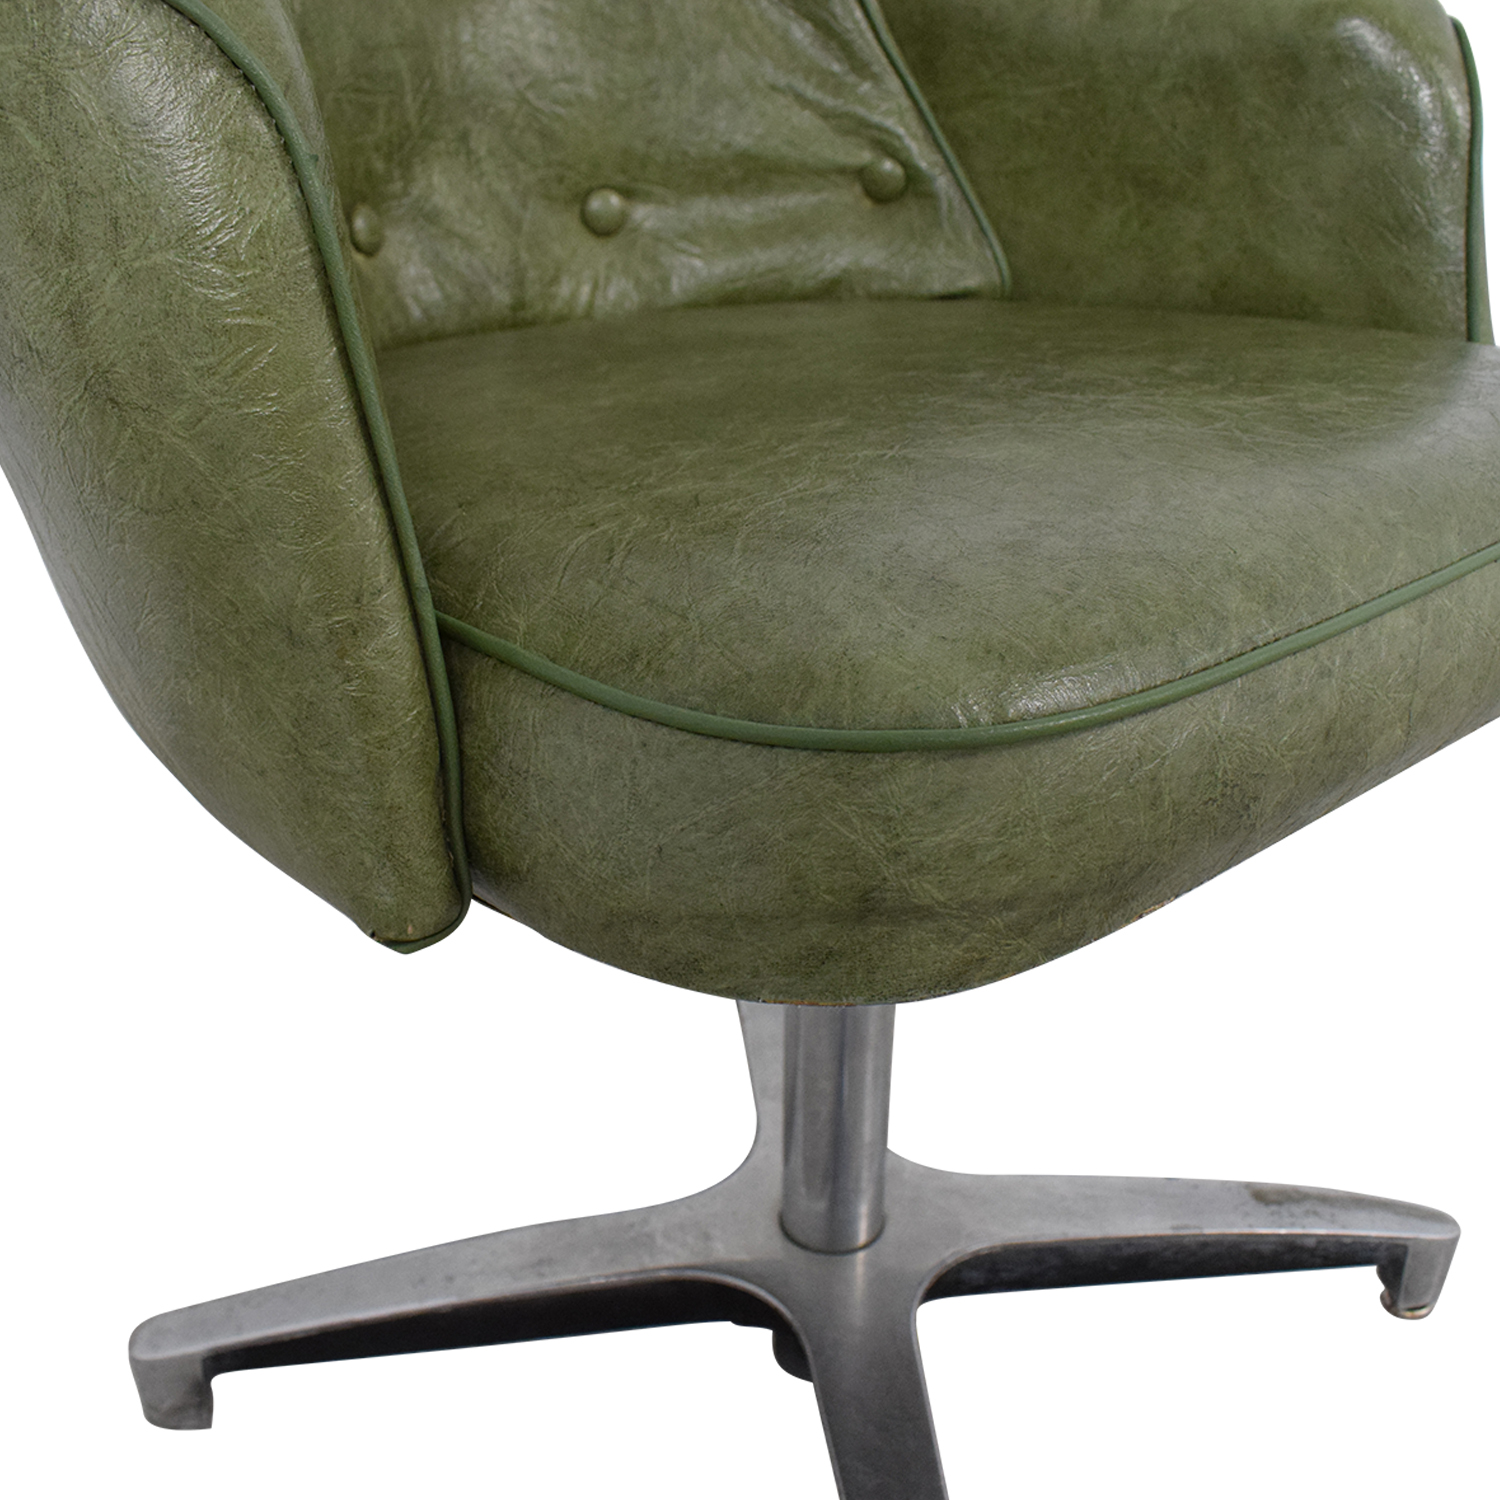 Spartan Chrome Furniture Green Leather Chair / Home Office Chairs